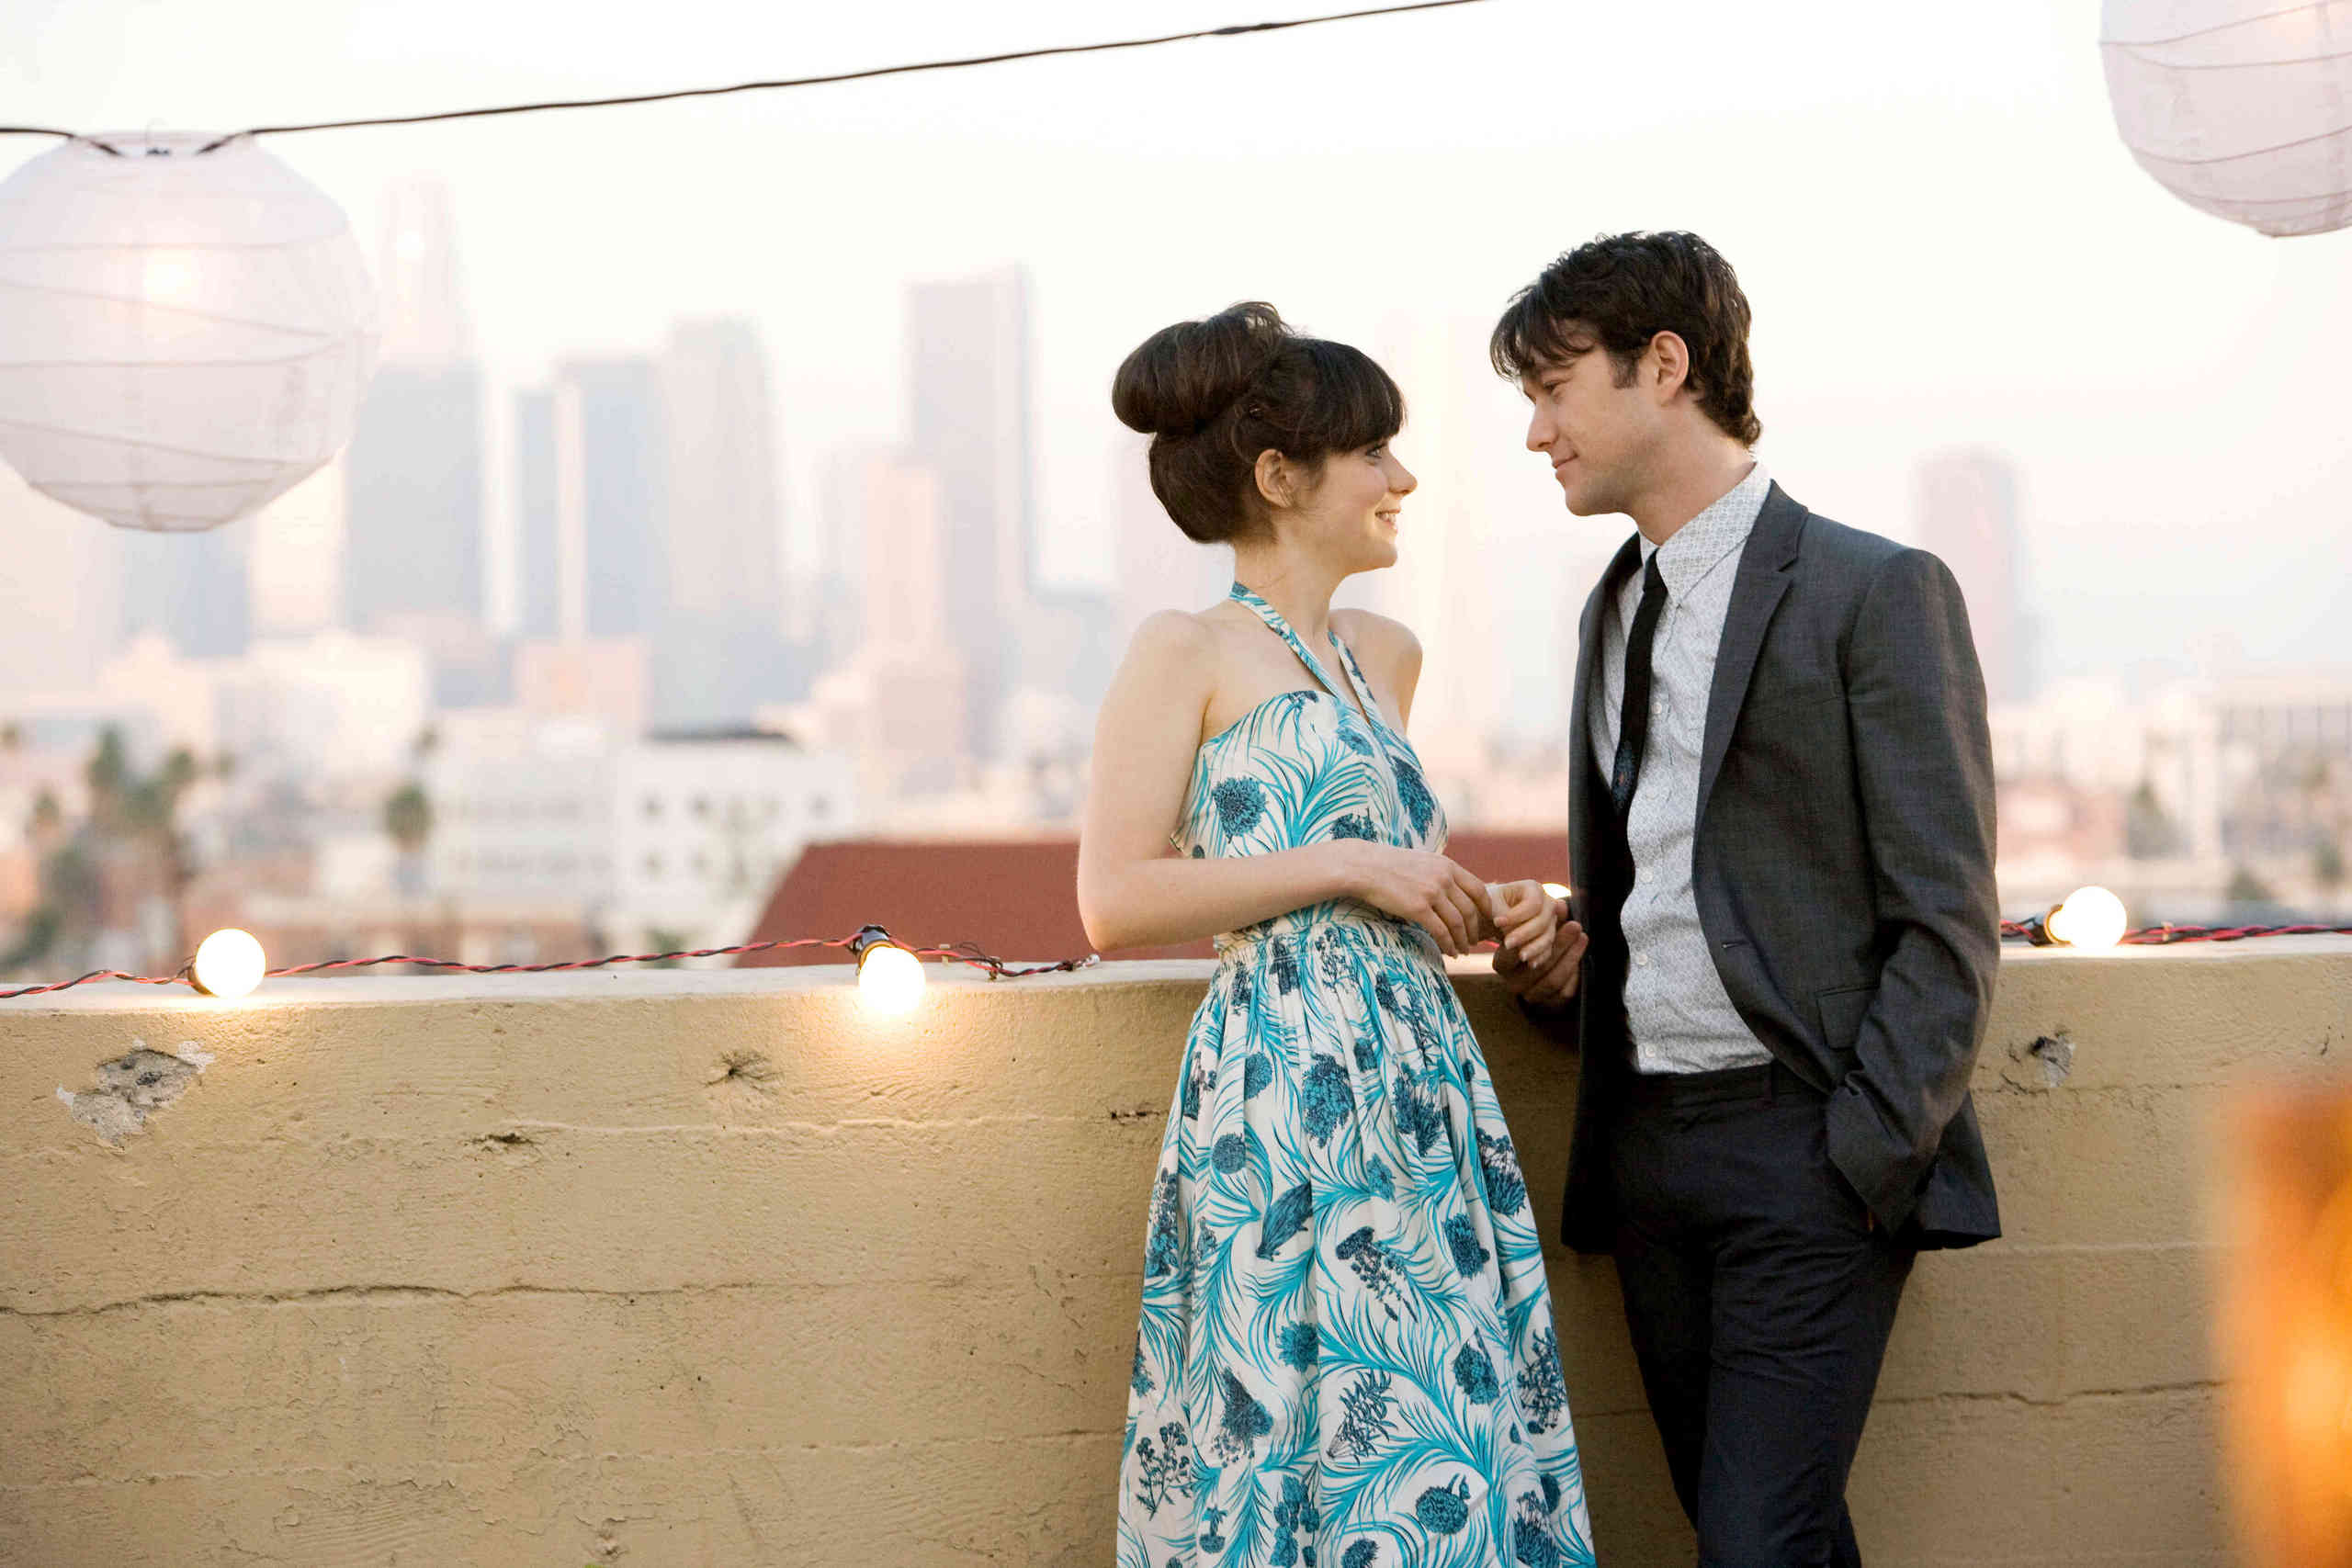 an analysis of the film 500 days of summer Film analysis communication studies 100 crash 500 days of summer analysis is fresh, offering new.